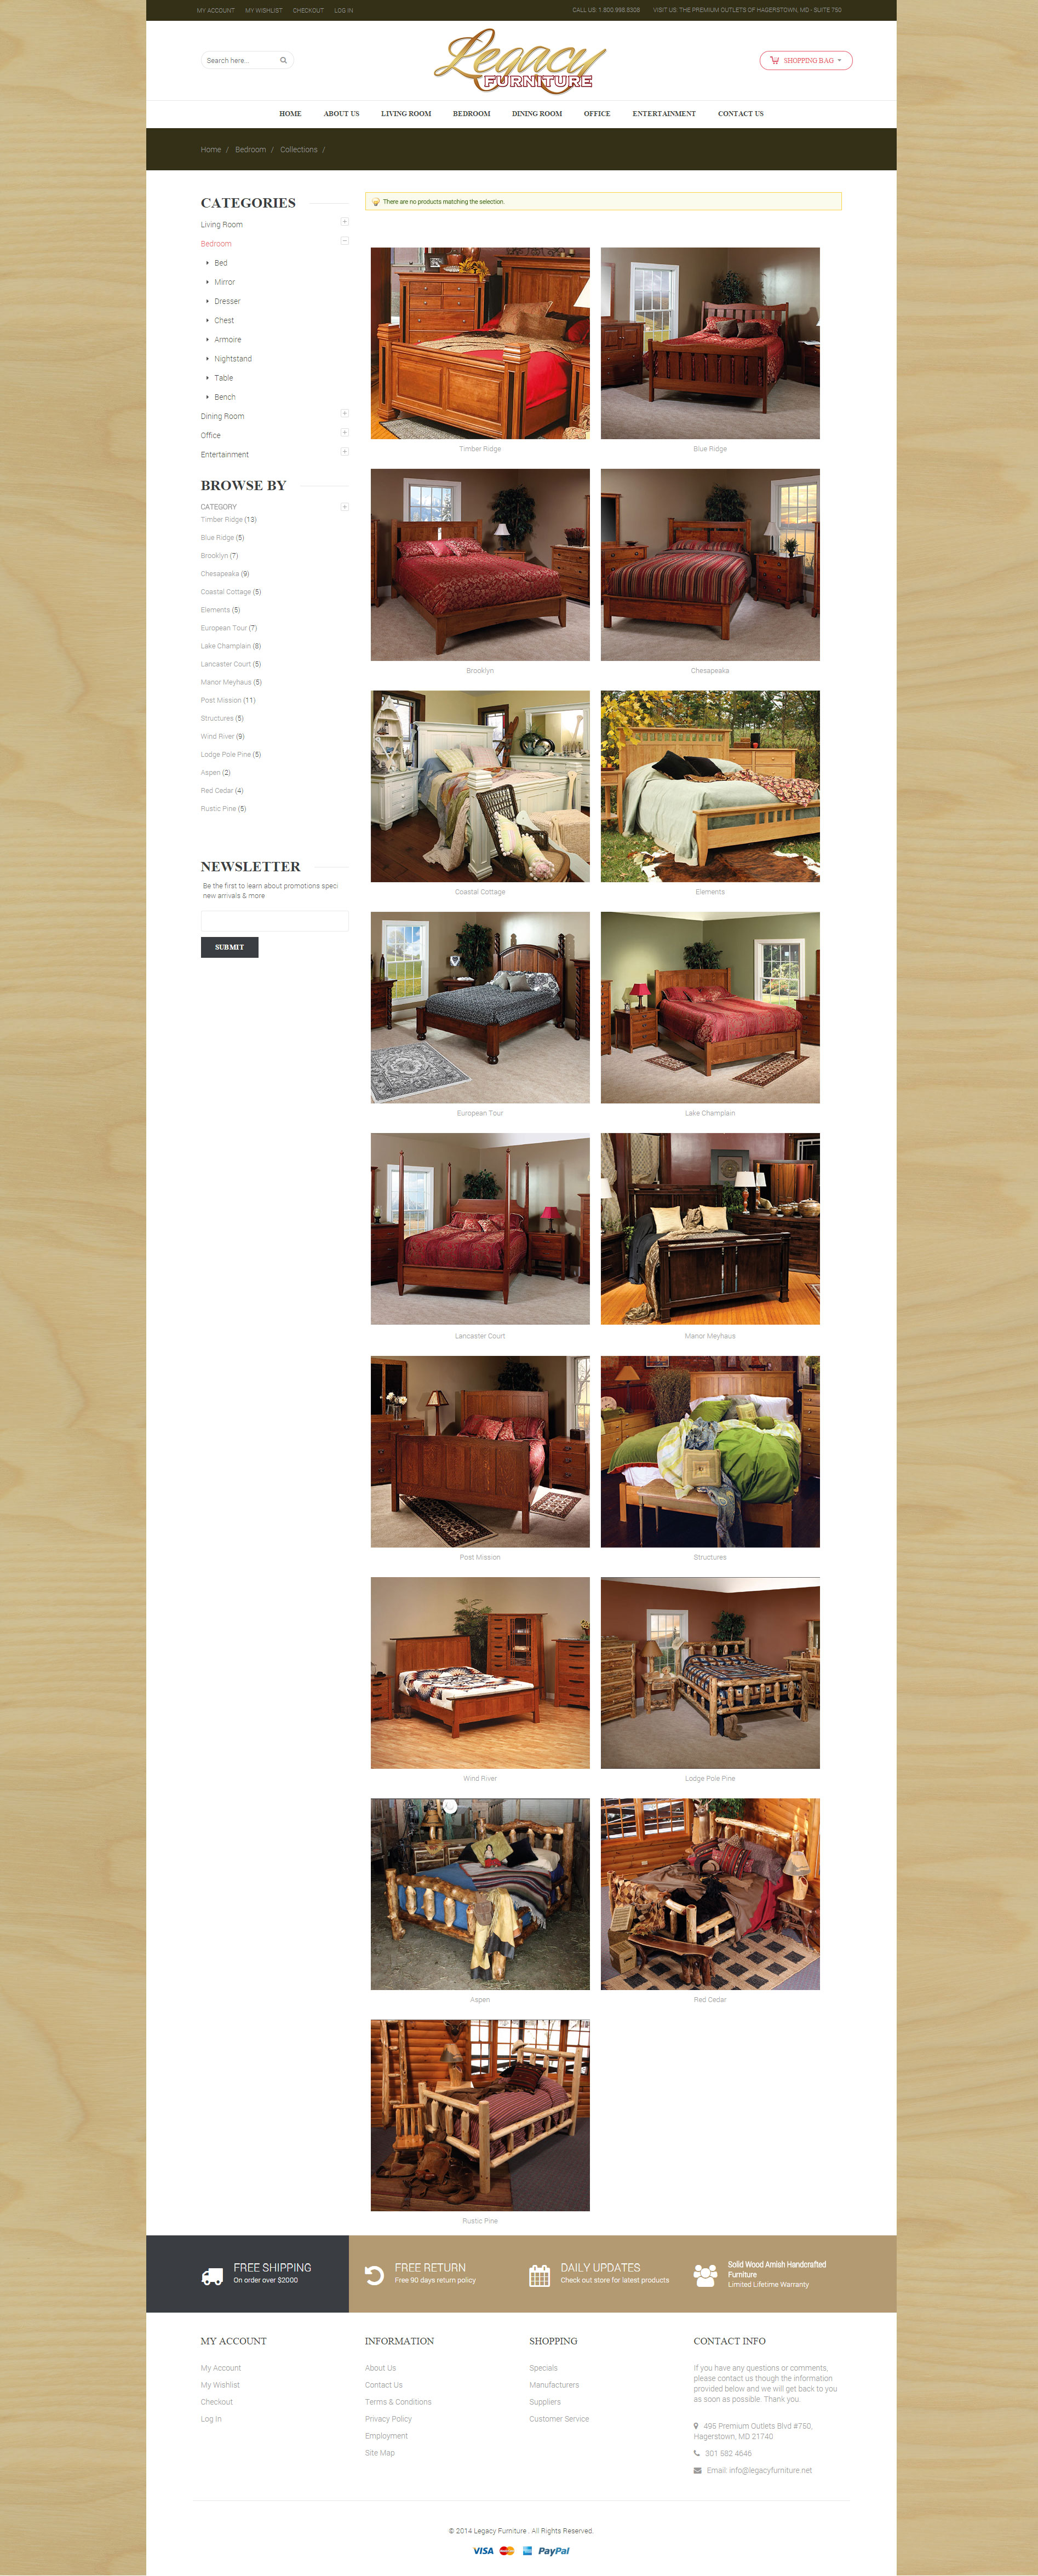 Legacy Furniture Bedrooms page